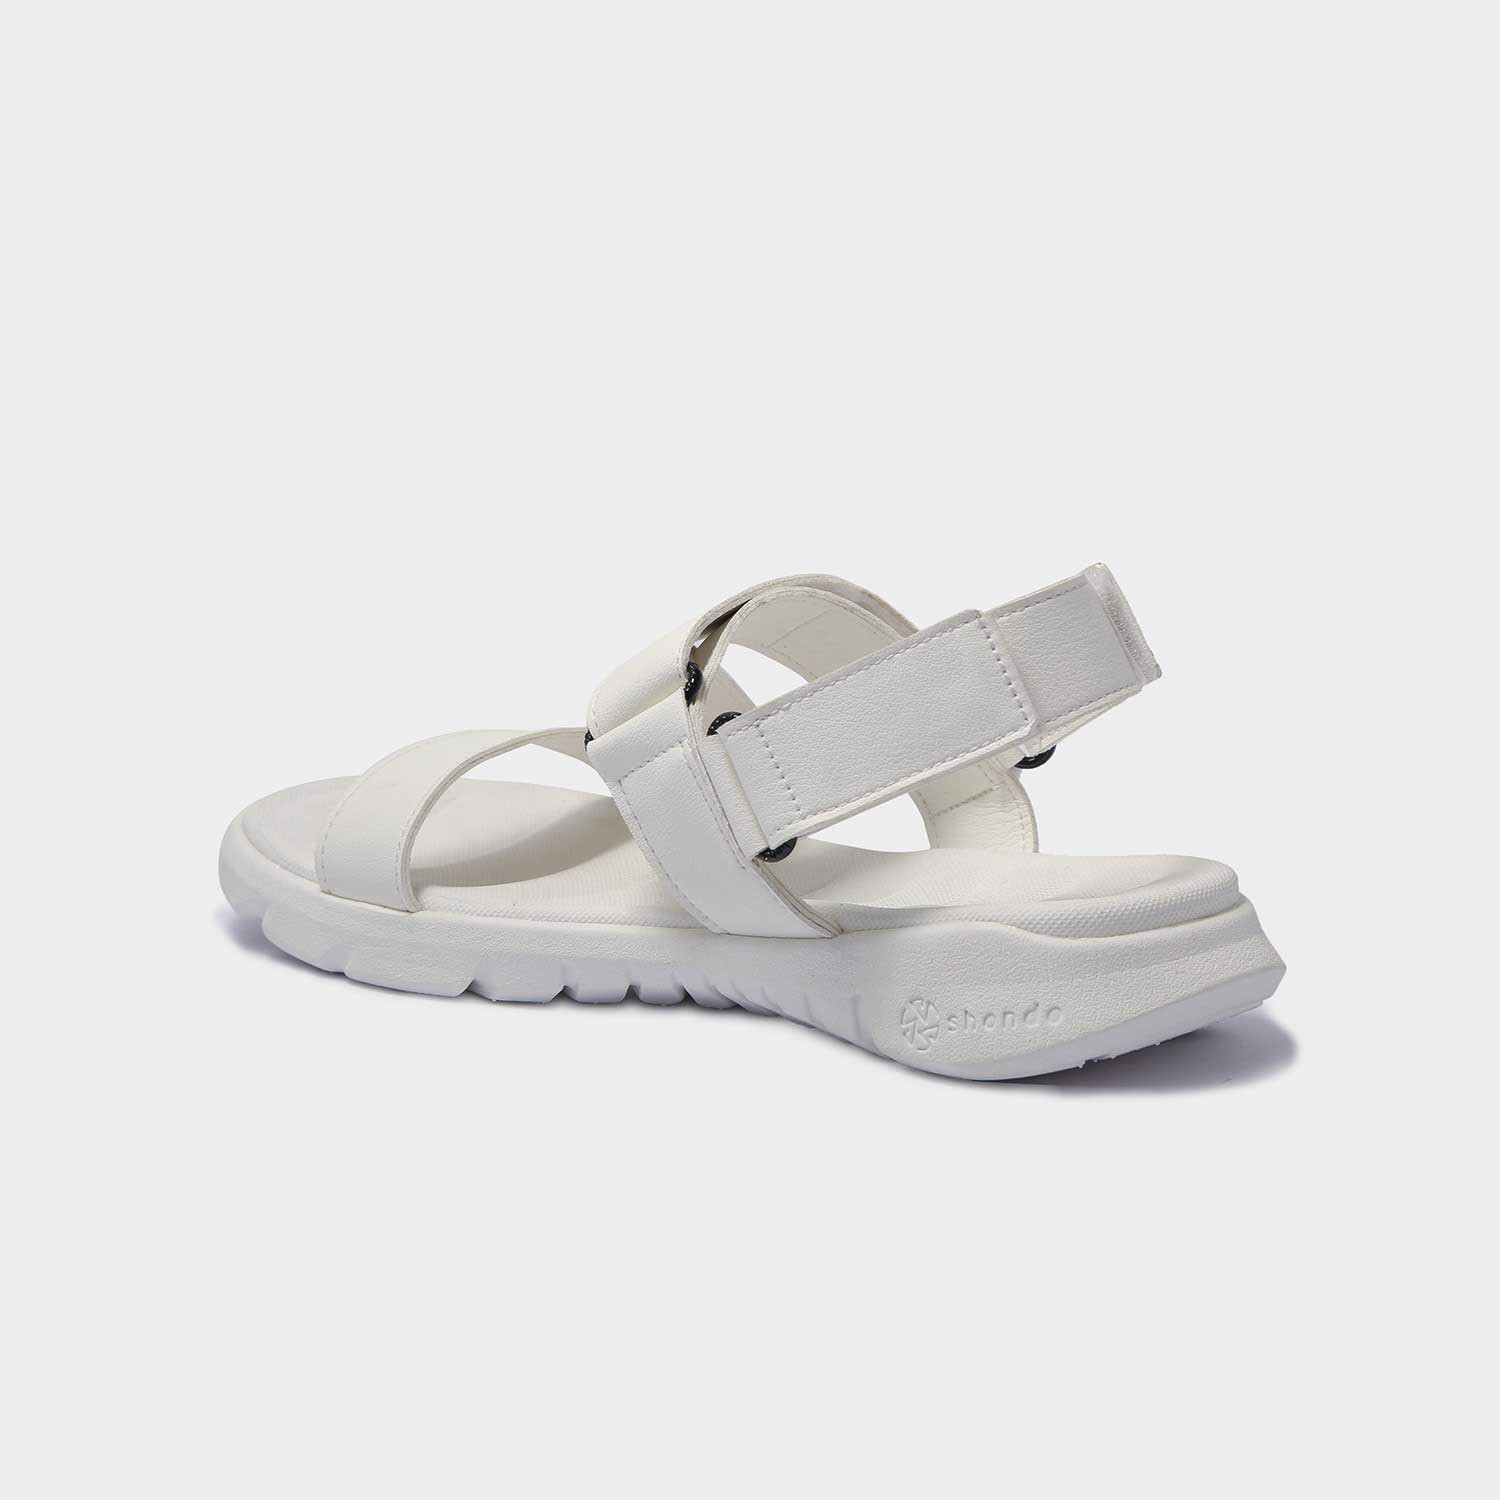 Giày sandals F6 sport trắng full F6S201